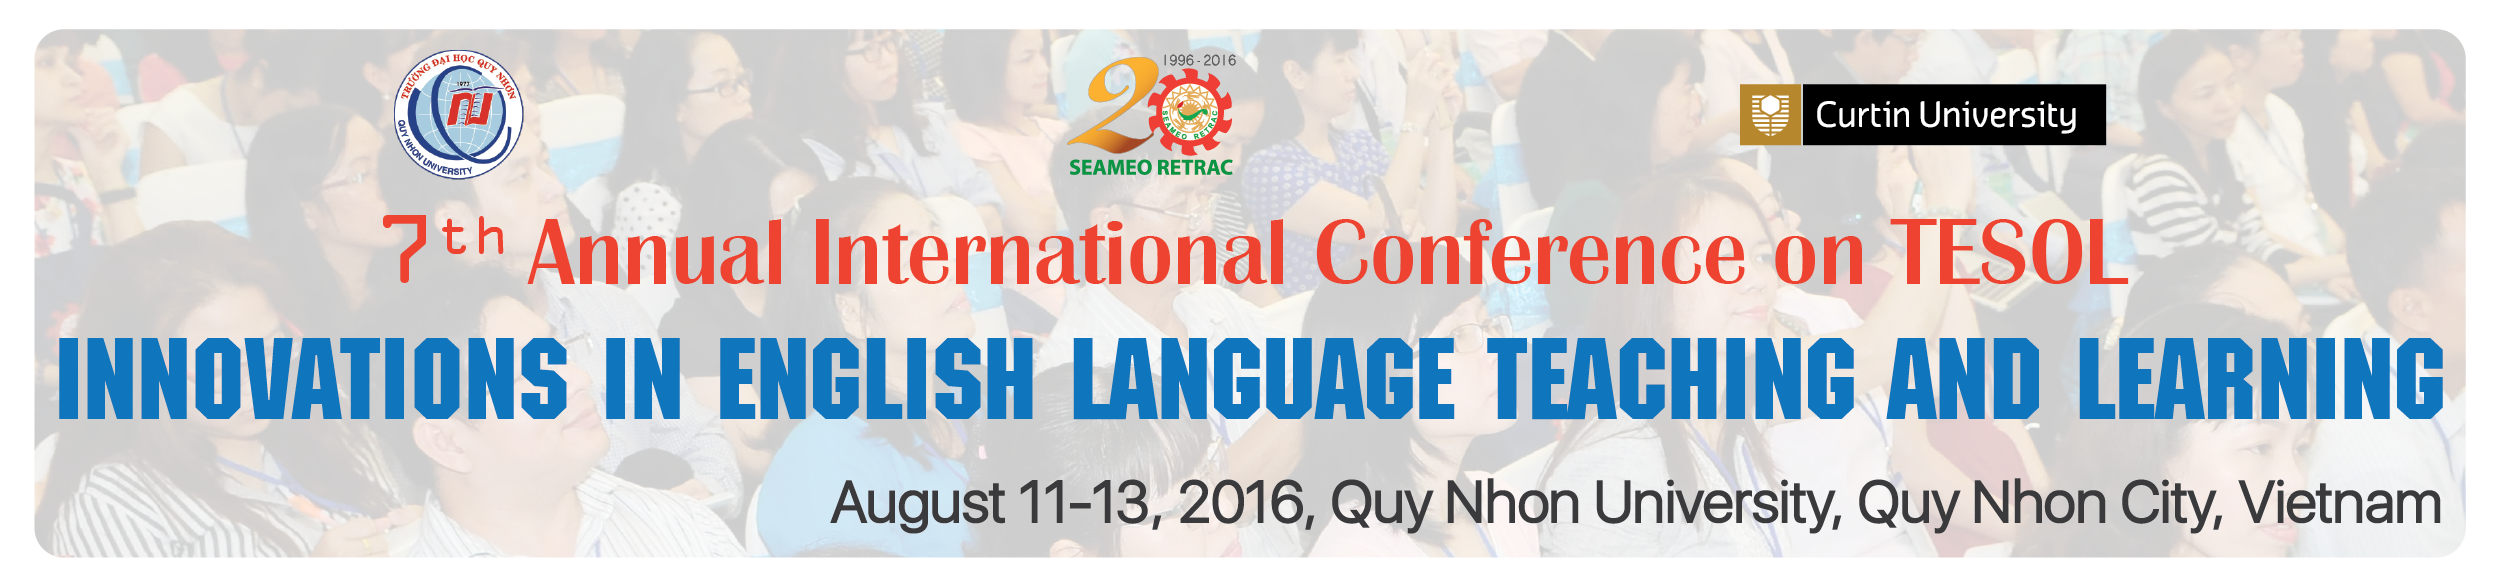 International Conference on TESOL